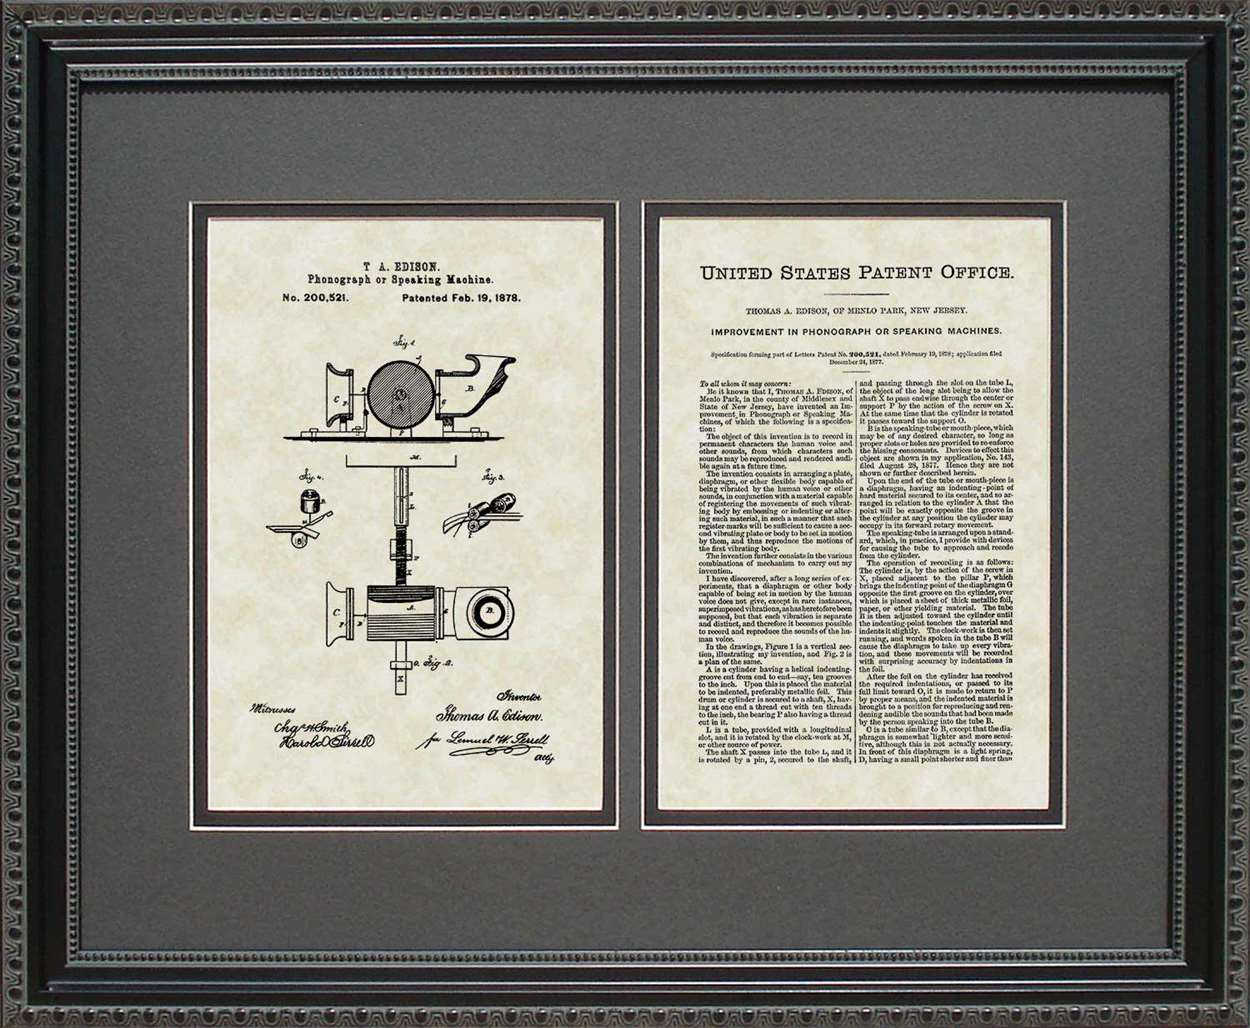 Phonograph/Record Player Patent, Art & Copy, Edison, 1878, 16x20